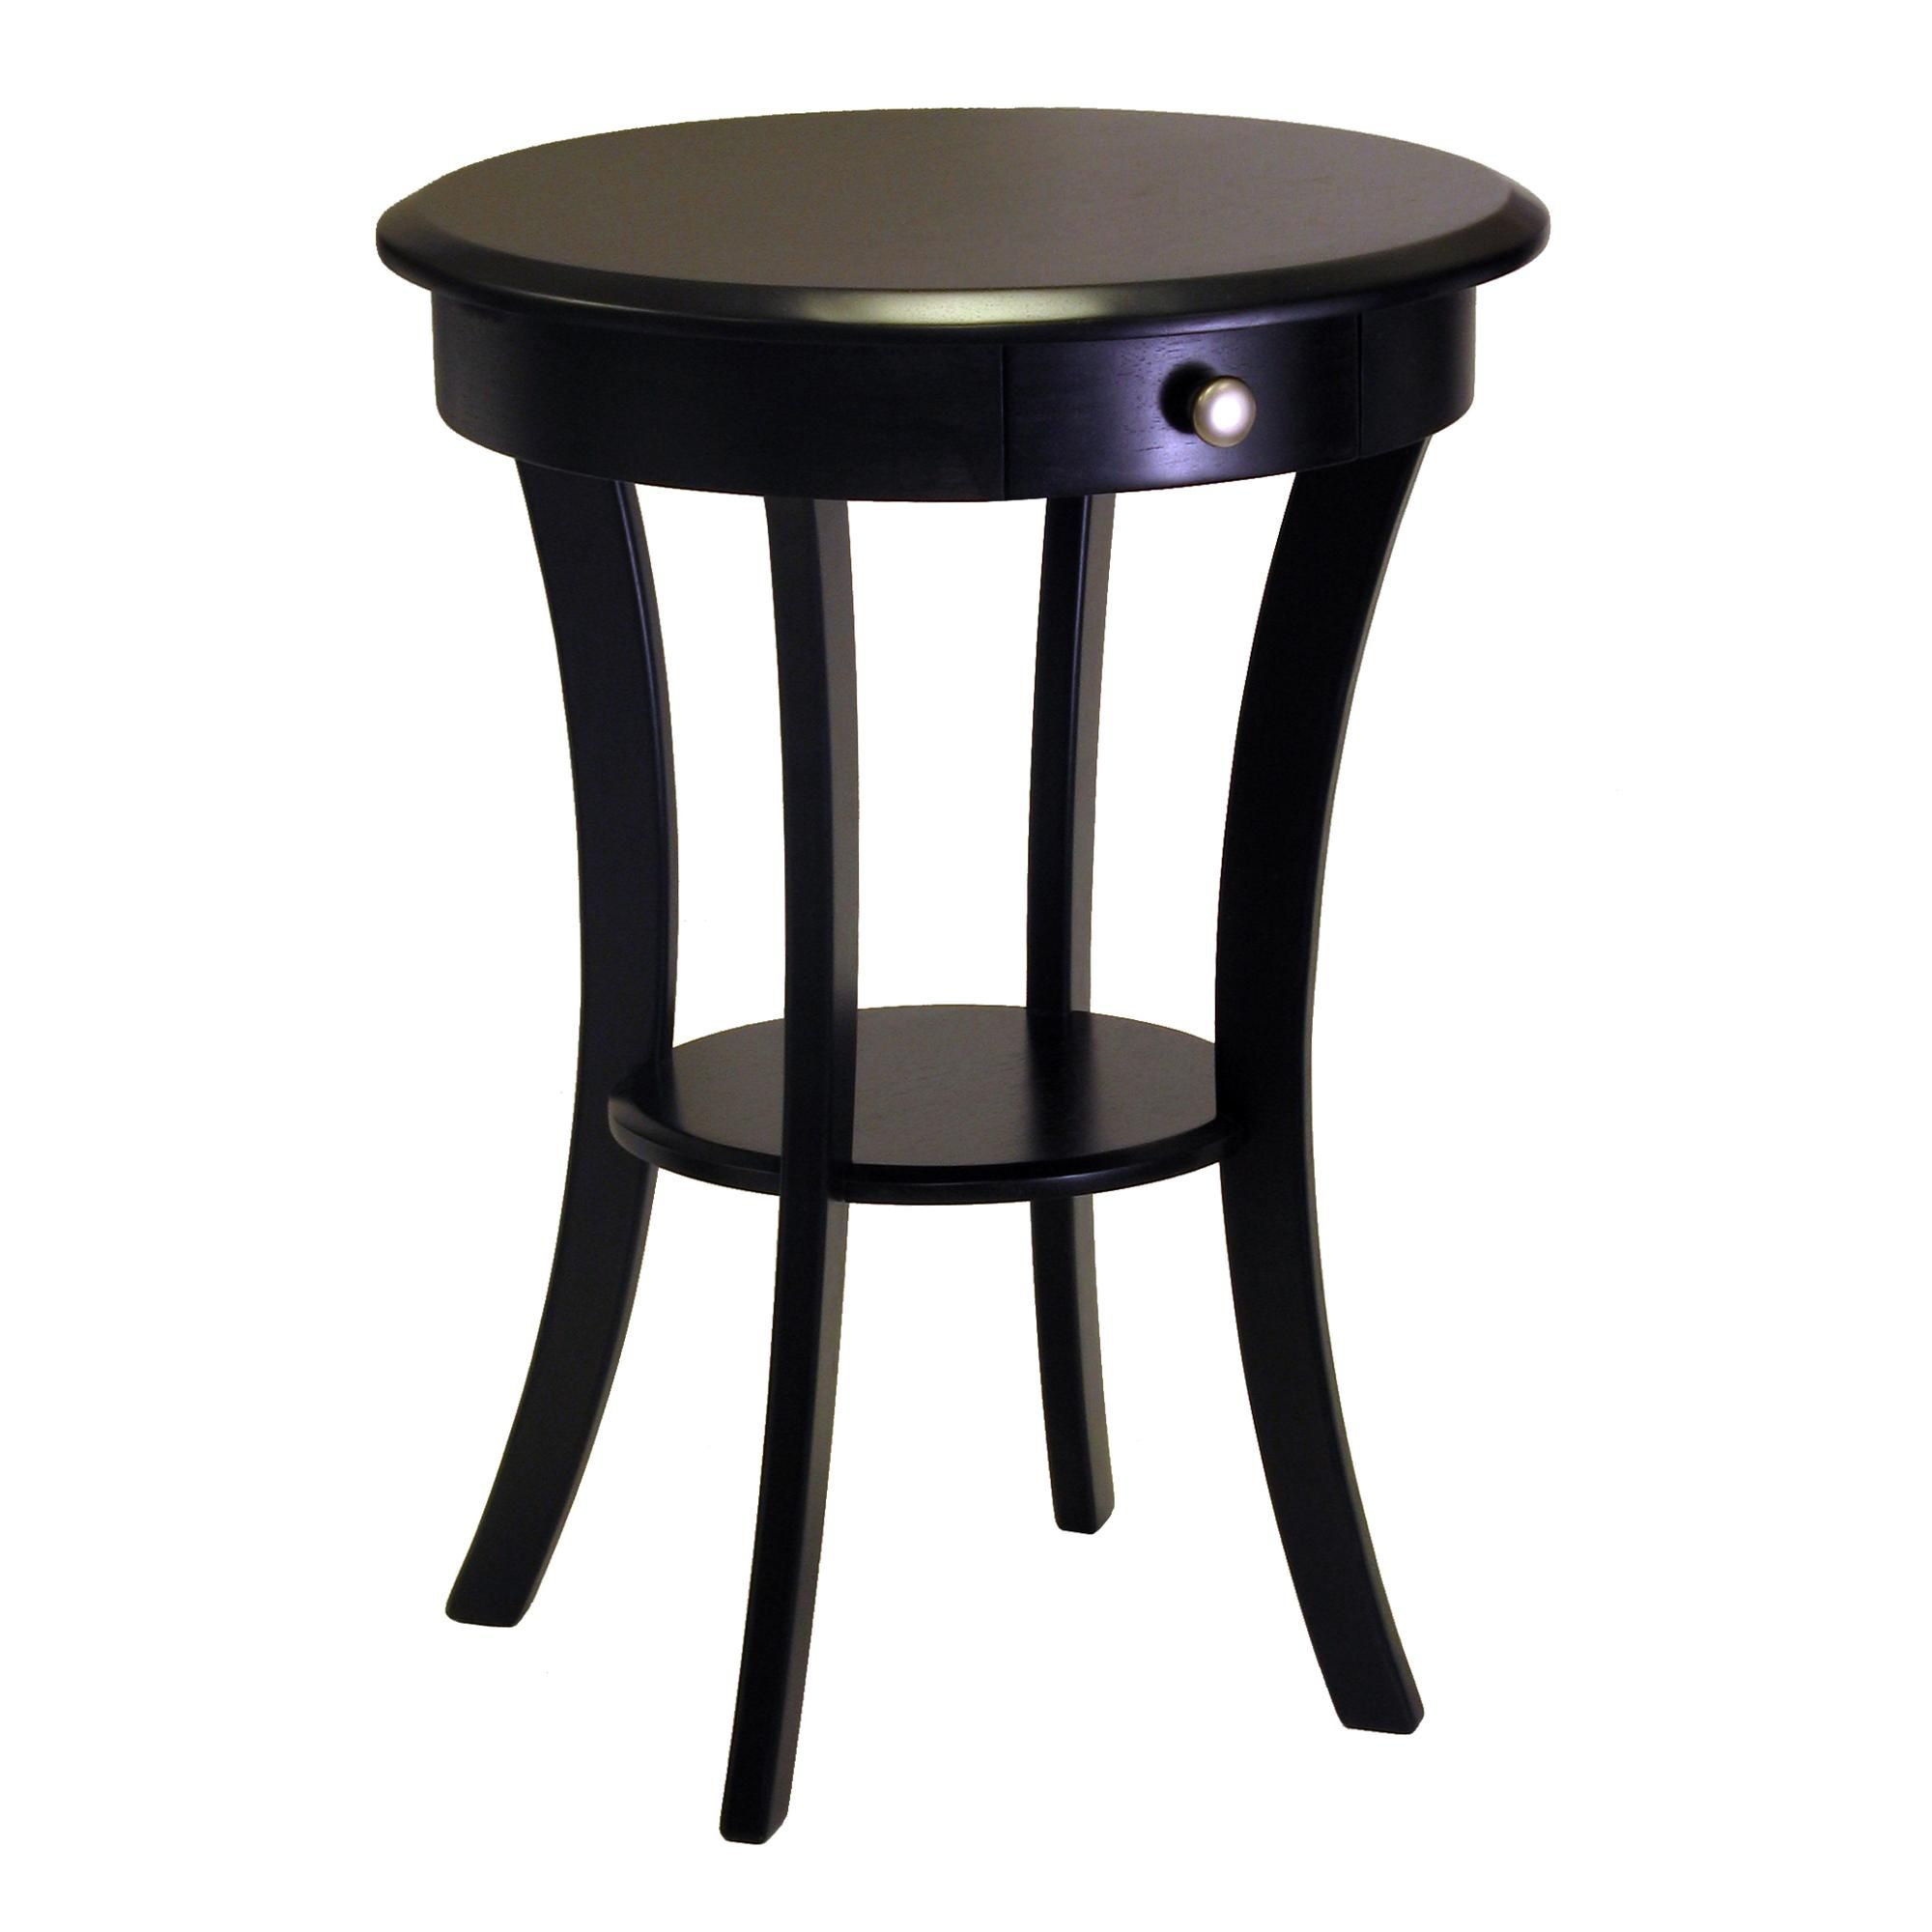 winsome wood round table with drawer and shelf black mainstays accent side simple design coffee faux fur saucer chair home garden furniture other accents hairpin leg end african